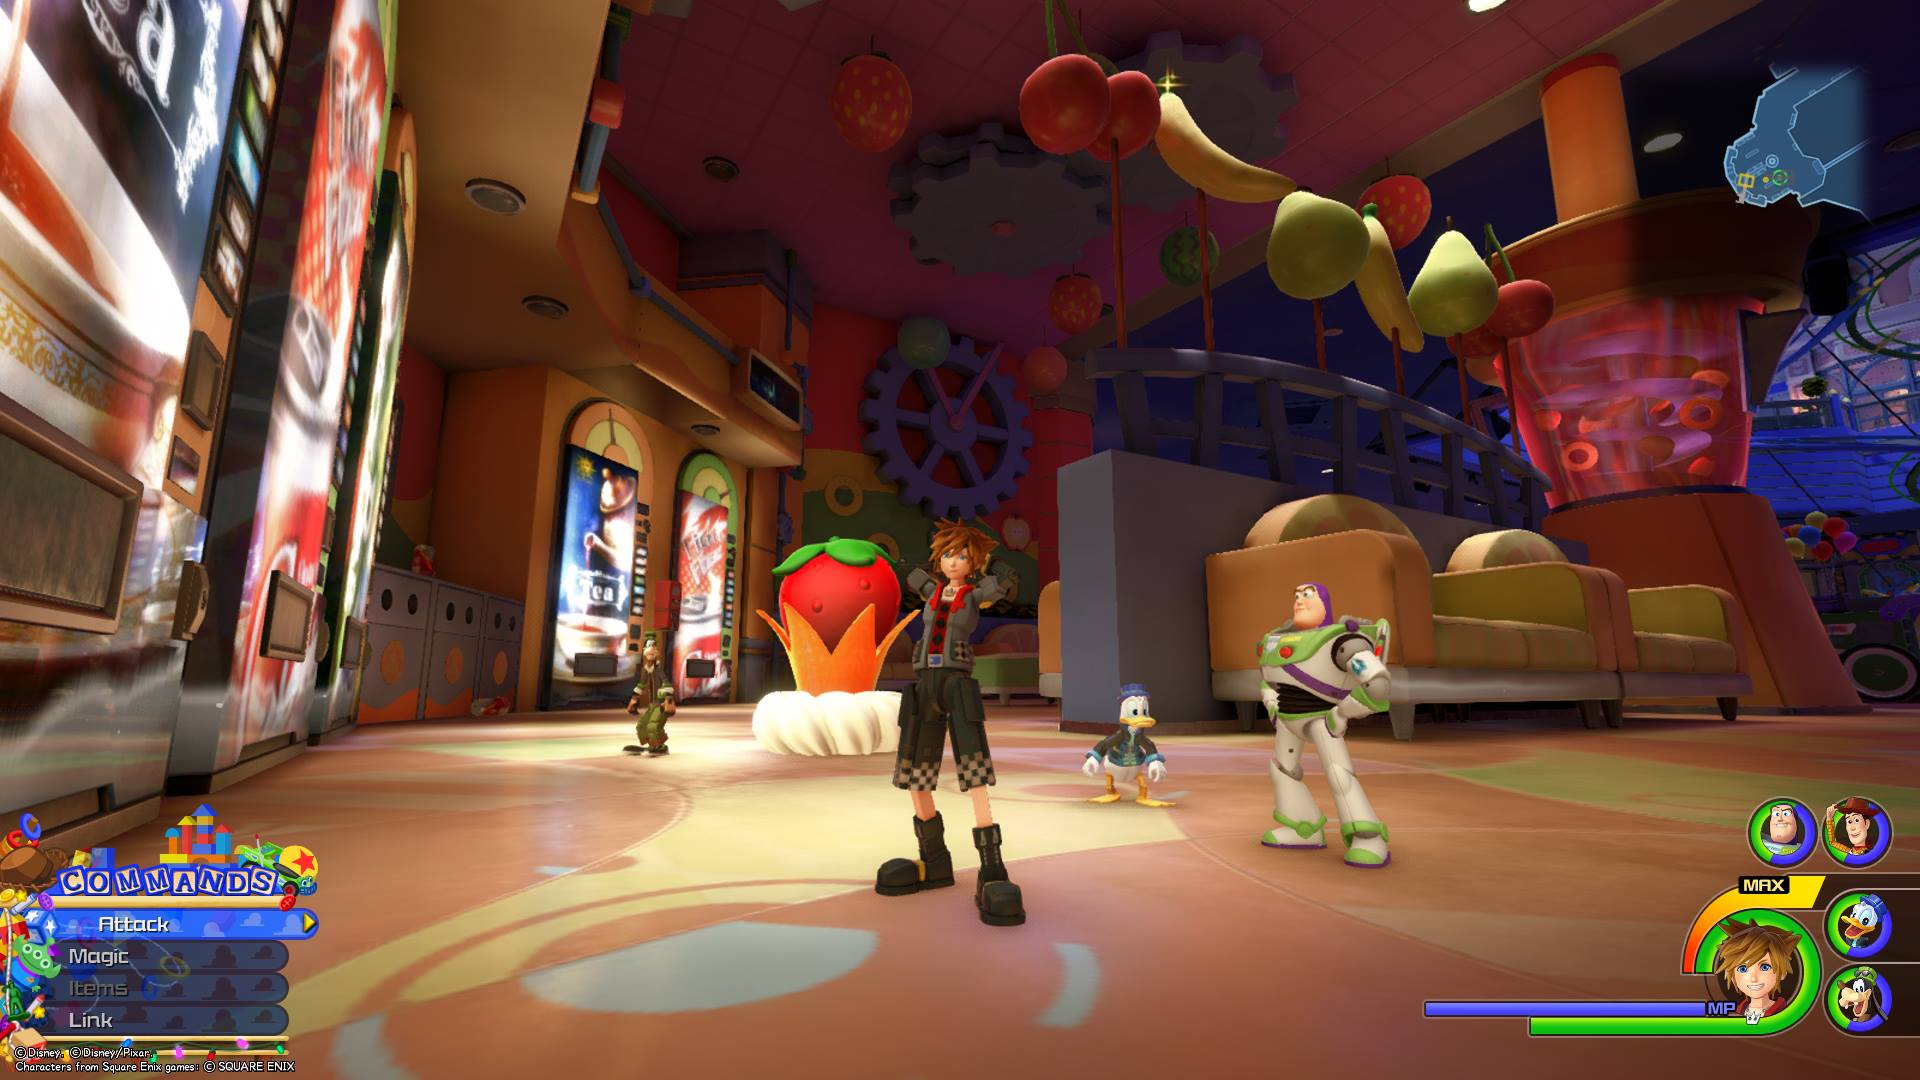 The second Flantastic Seven member can be found in the Rest Stop area of Galaxy Toys in the Toy Box world of Kingdom Hearts 3.